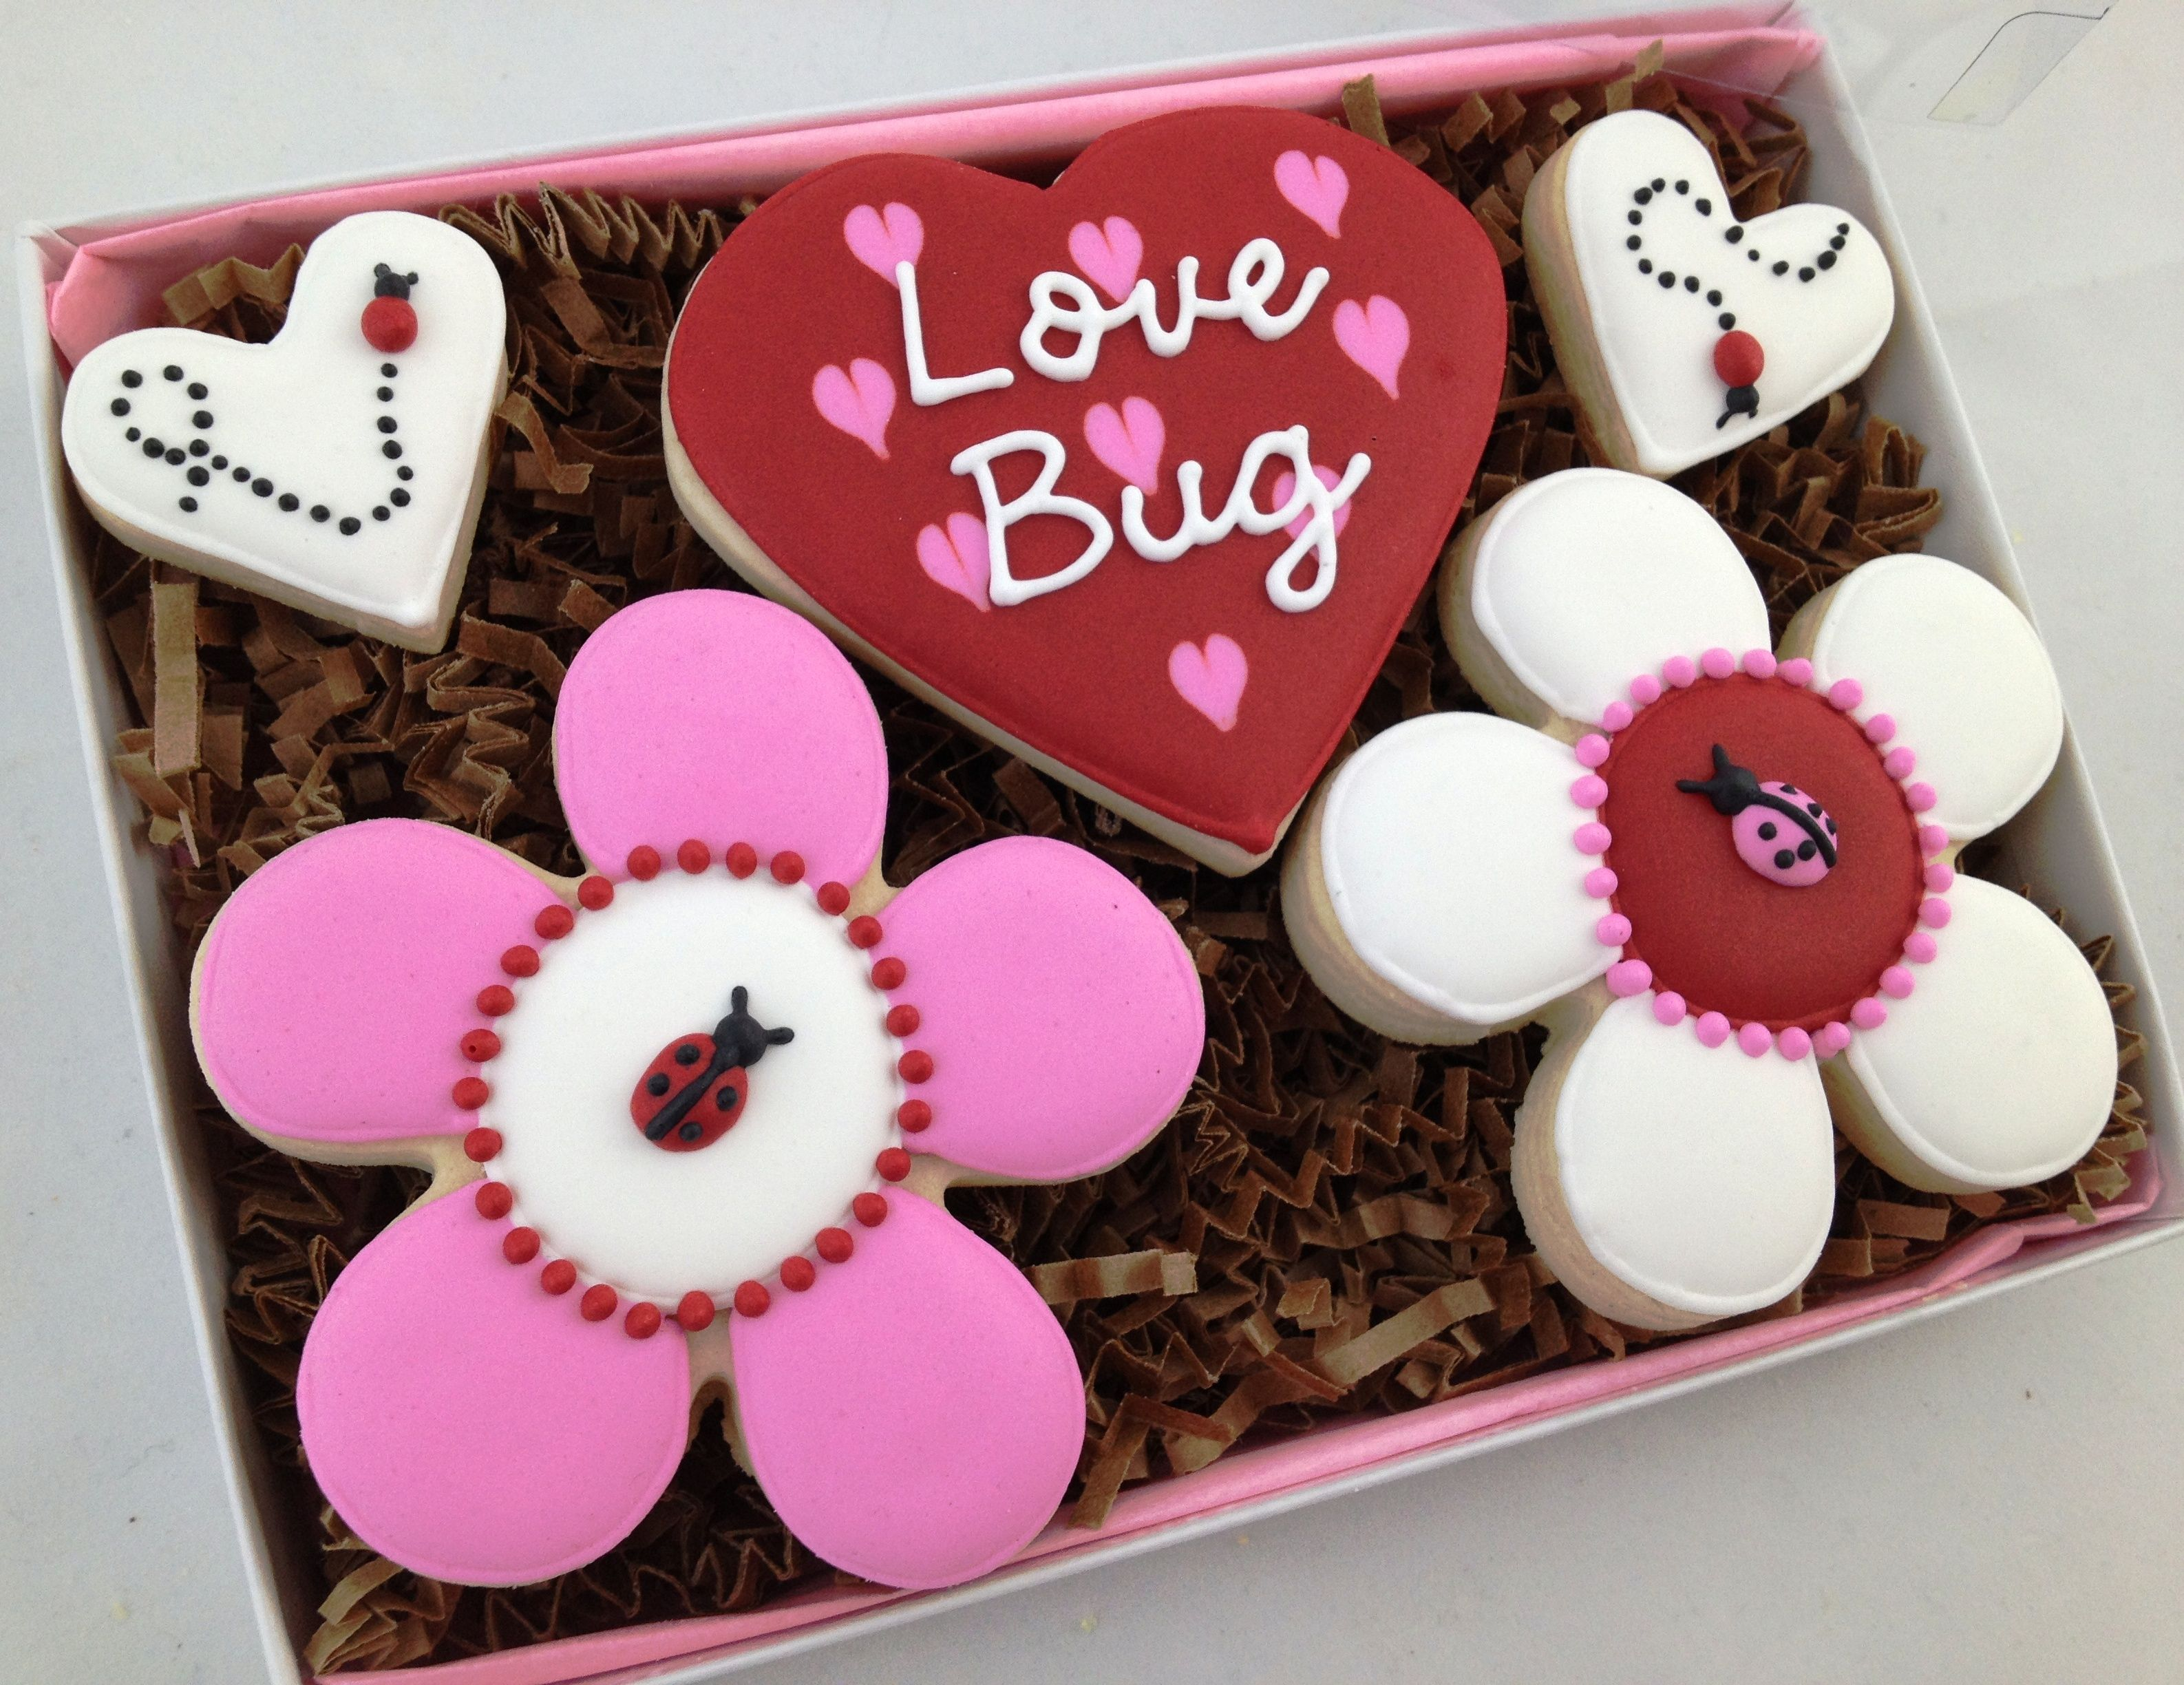 The perfect card for your love bug - a cookie card!